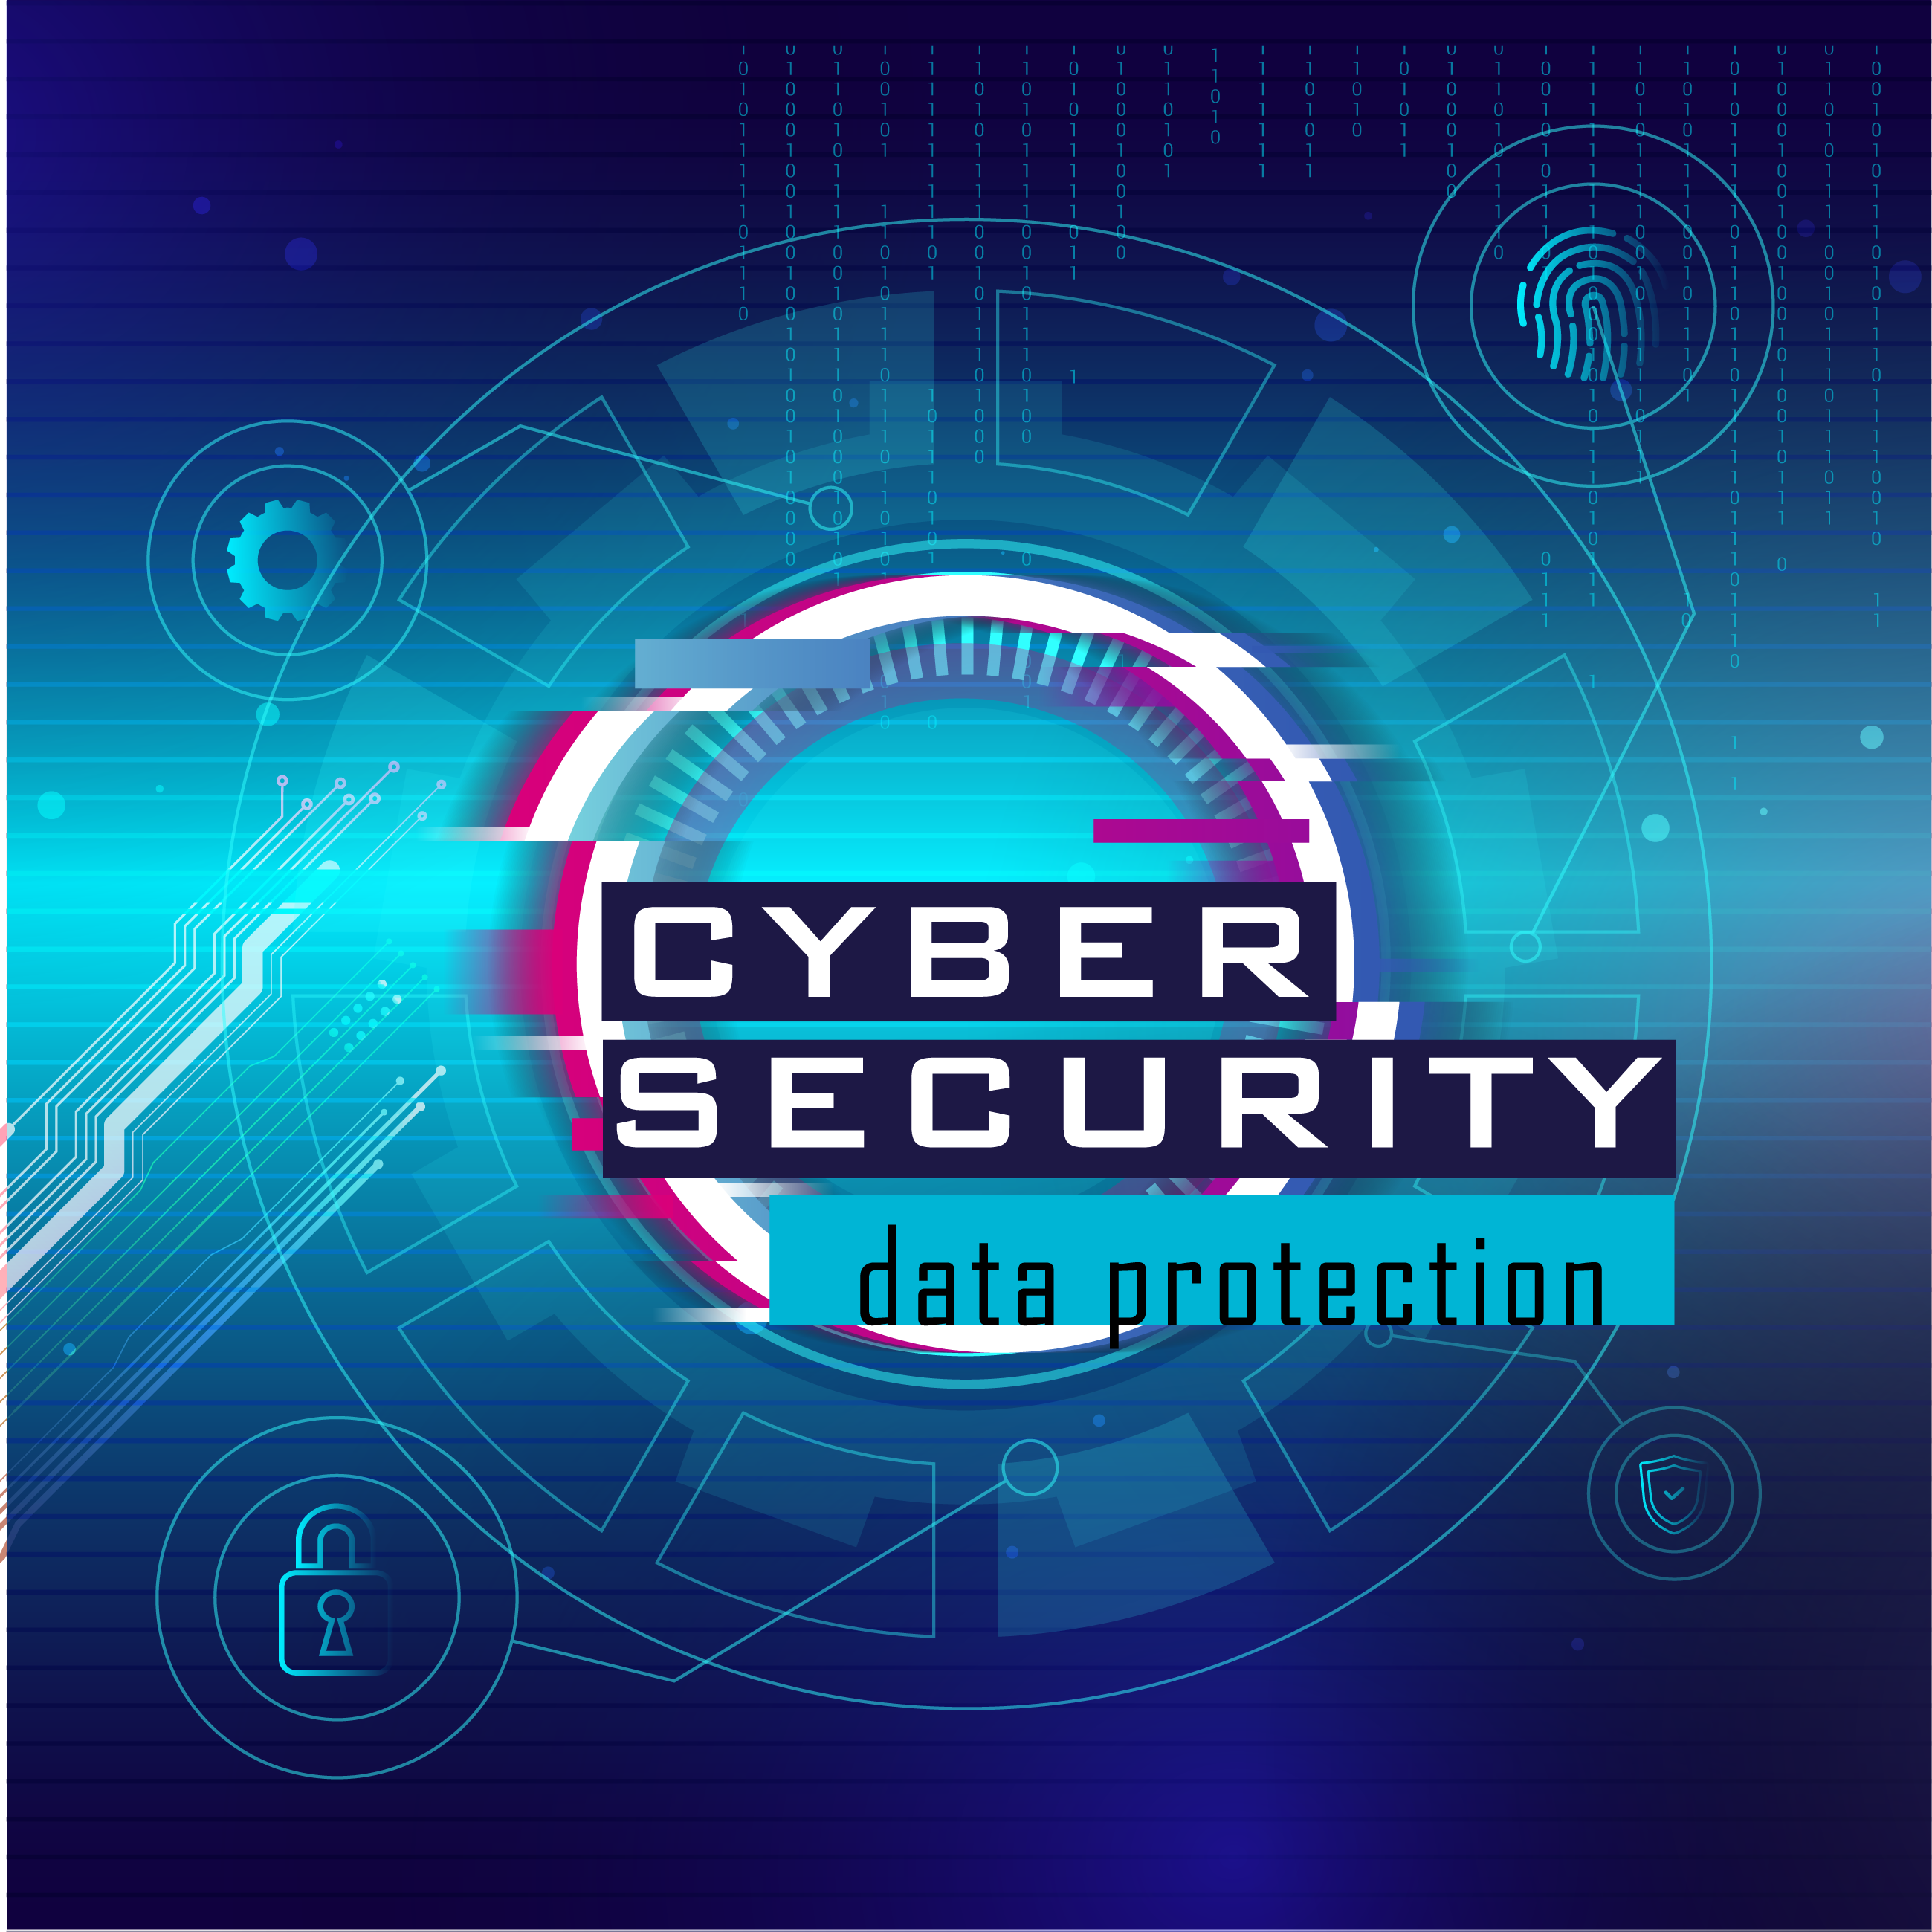 Cyber-Security, Data Protection